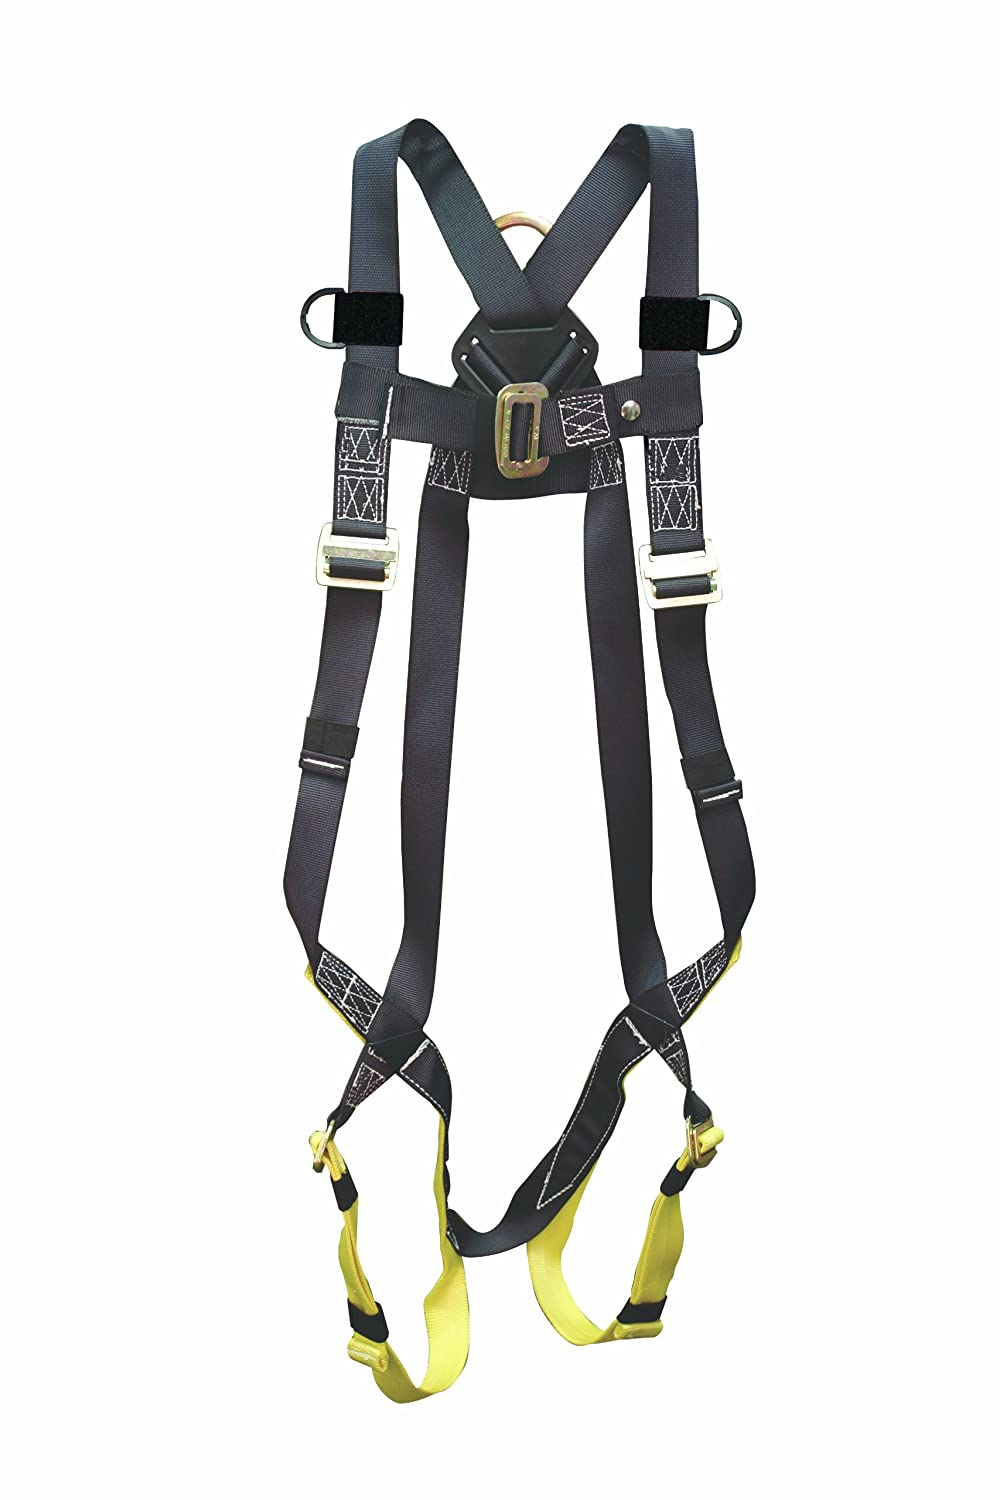 Elk River 42109 Universal Polyester//Nylon Full Body 1 Steel D-Ring Harness with Parachute Mating Buckles and Fall Indicator Fits Medium to 2X-Large Inc